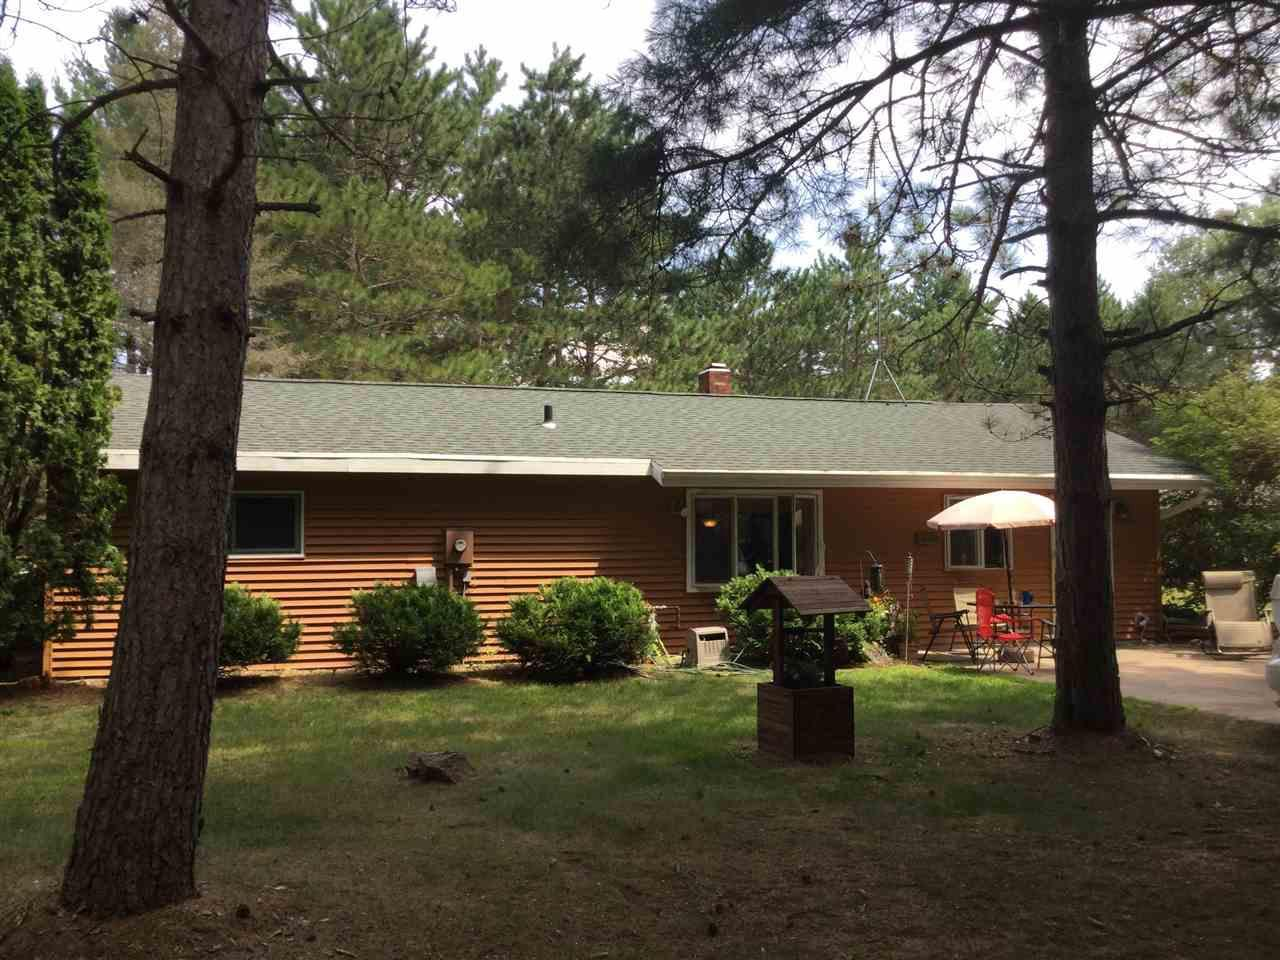 Local Real Estate: Homes for Sale — Neshkoro, WI — Coldwell Banker